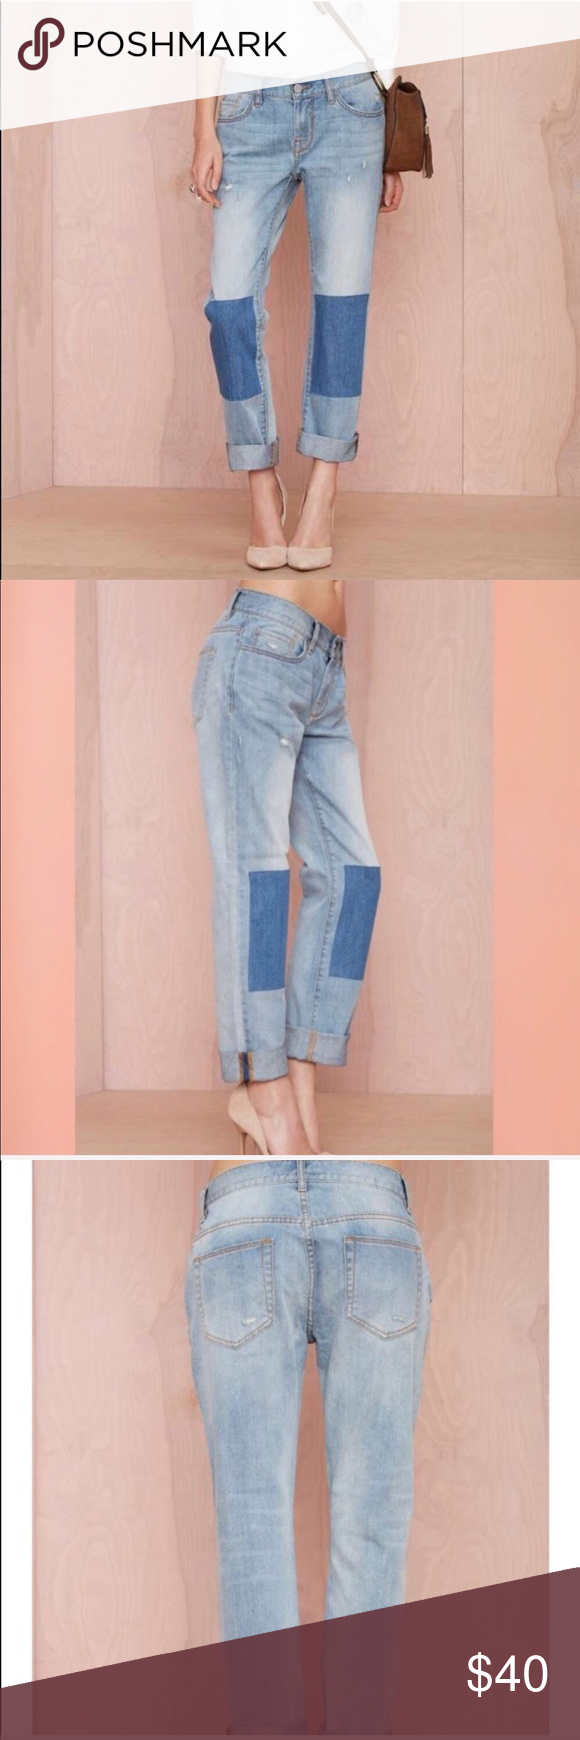 "Nasty Gal • Patch Knee Relaxed Fit Boyfriend Jeans NWT Nasty Gal women's size 25 medium wash boyfriend relaxed fit jeans with blue knee patches. The cuffs can be unrolled as well. Brand new   Inseam 29.5""  Waist 15.5""  Rise 8.5""   No Trades  0905ws68 [0622] Nasty Gal Jeans Boyfriend"